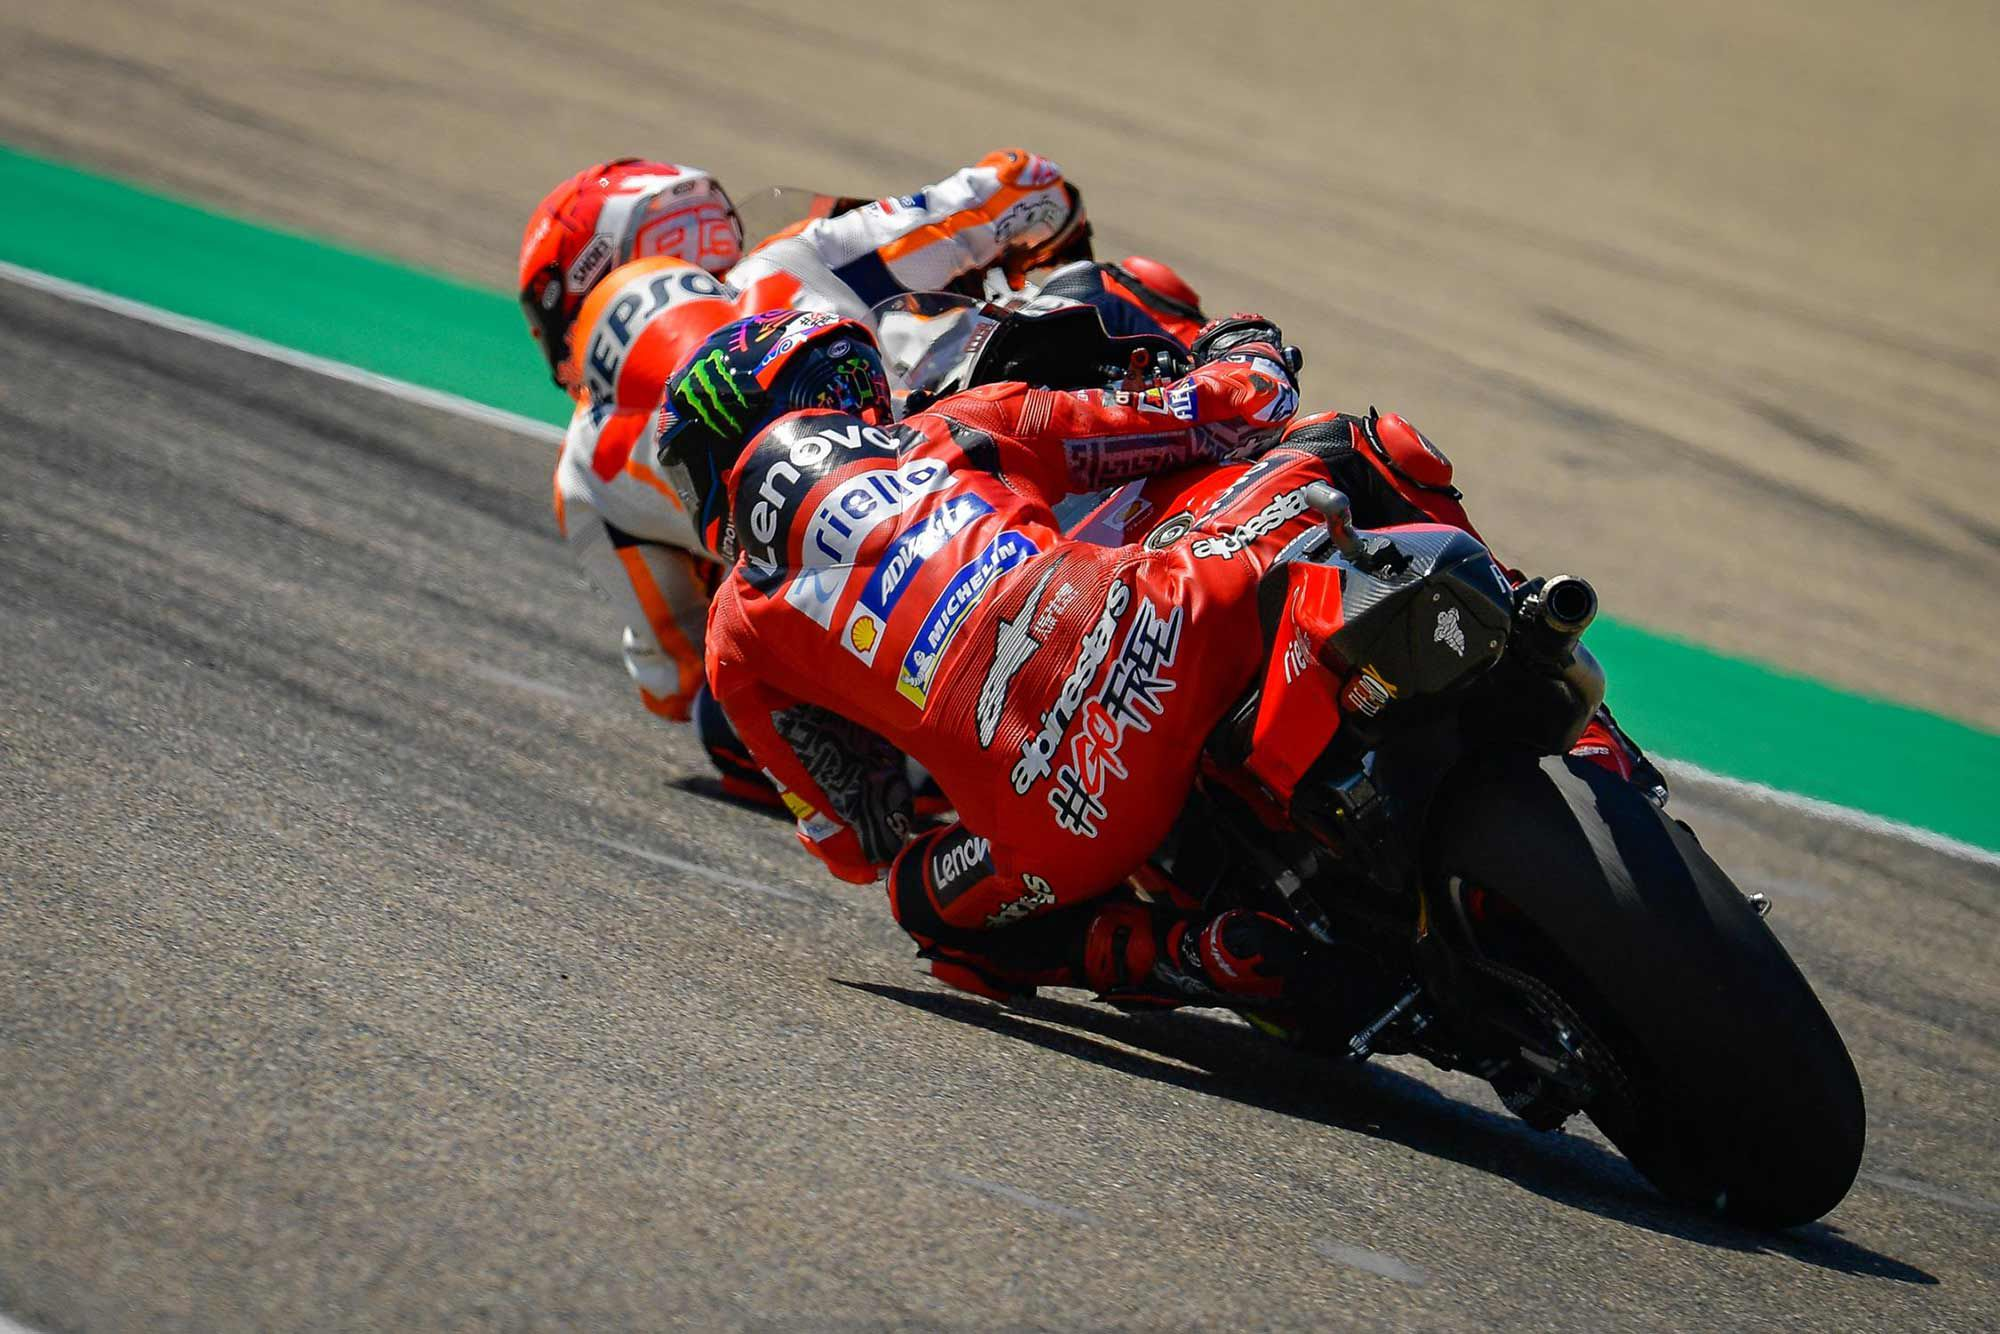 The Ducati's cornering ability at Aragón allowed Bagnaia to counter every move Márquez made.